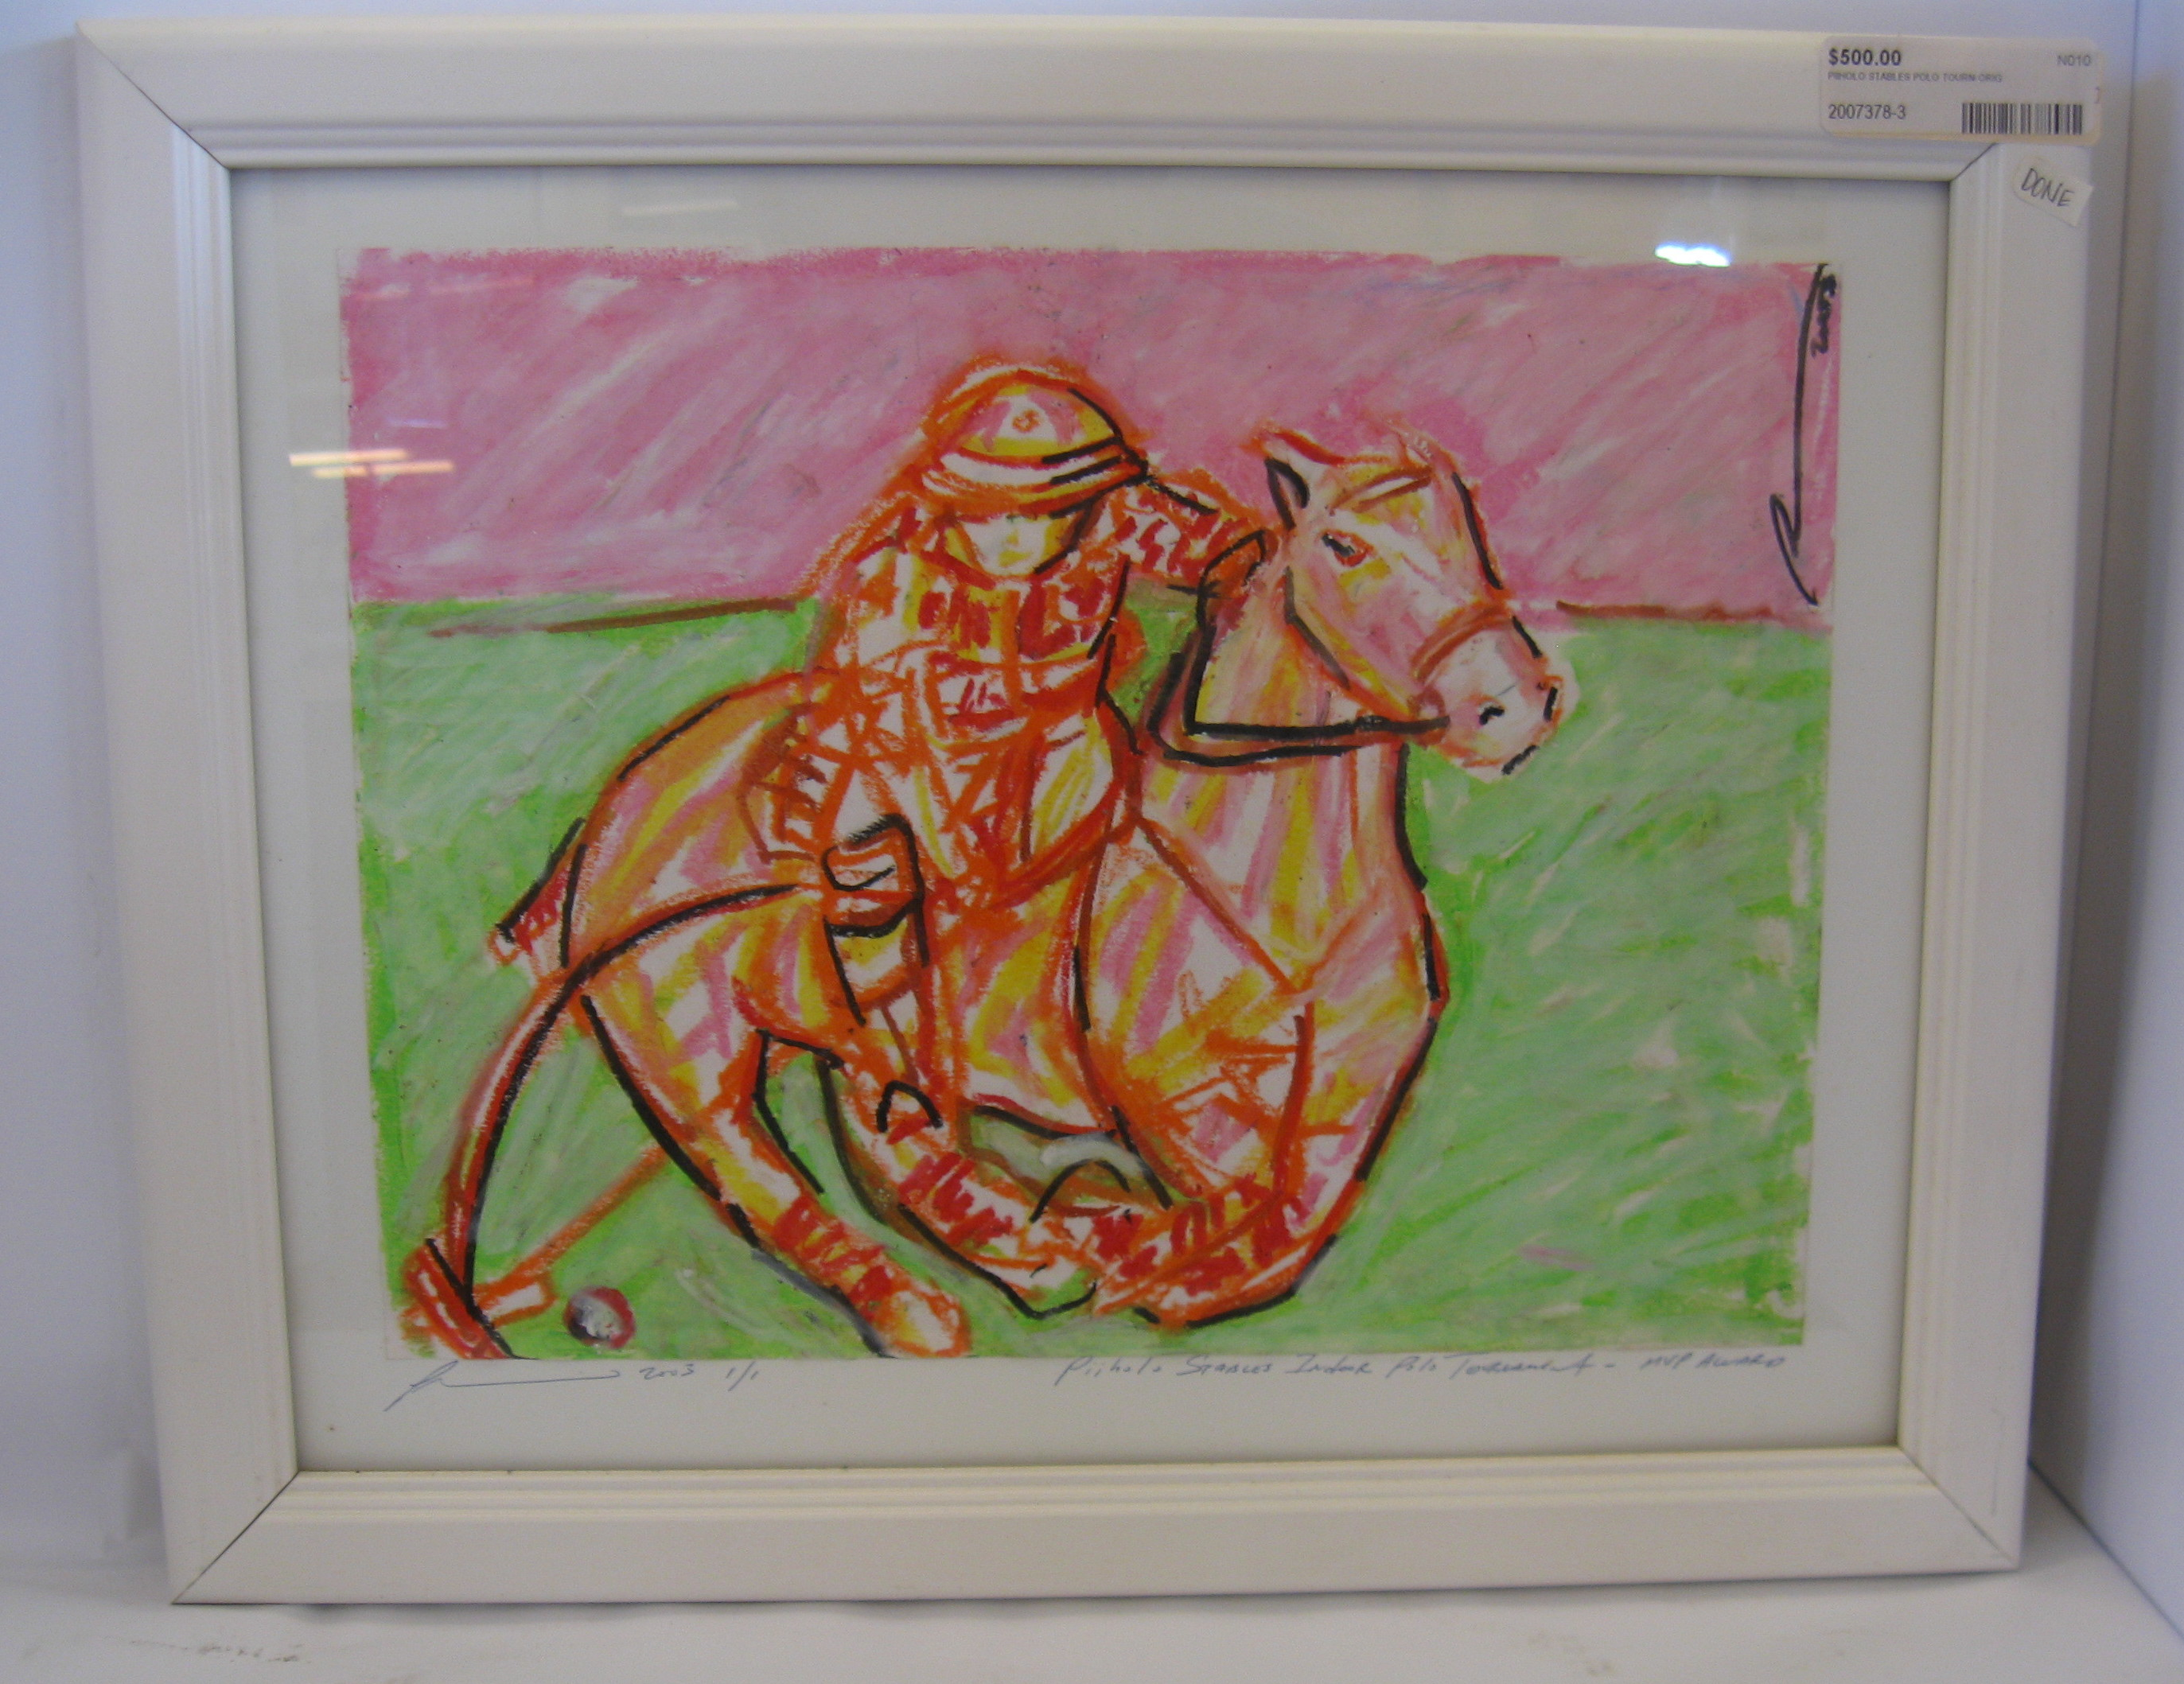 Two MVP Award Winning Piiholo Stables Indoor Polo Tournament Framed Art Pieces